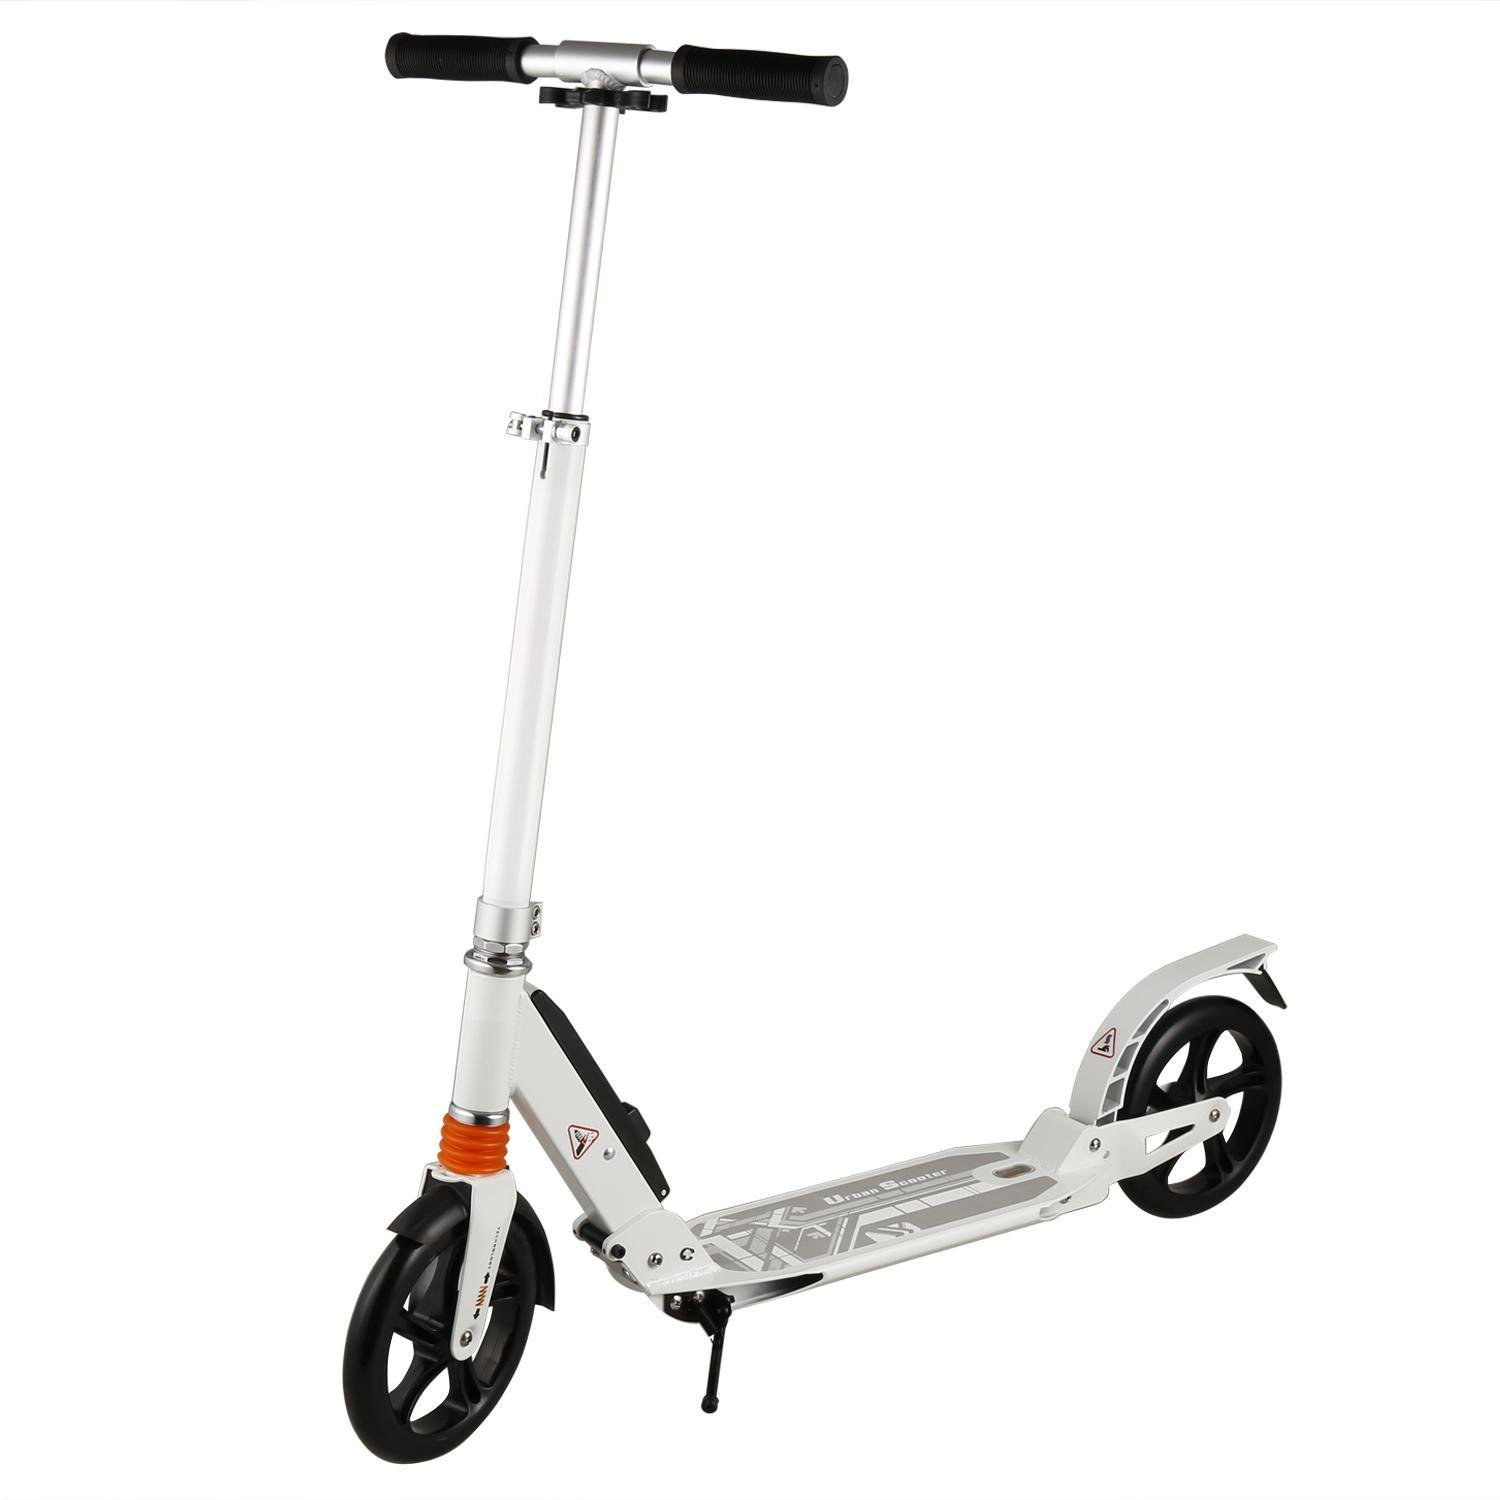 Lantusi Adult Kick Scooter, Folding 3 Levels Adjustable Height 2-Wheel Urban Commuter Scooter for Kids Teen (US STOCK)